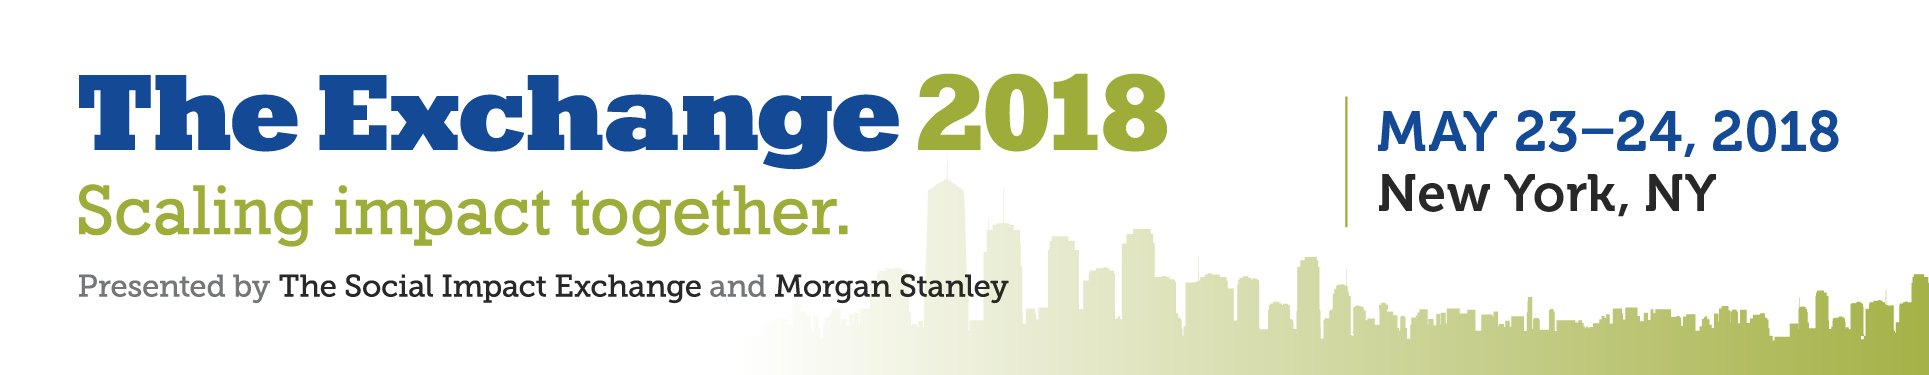 The Exchange 2018: Scaling Impact Together. Presented by The Social Impact Exchange and Morgan Stanley